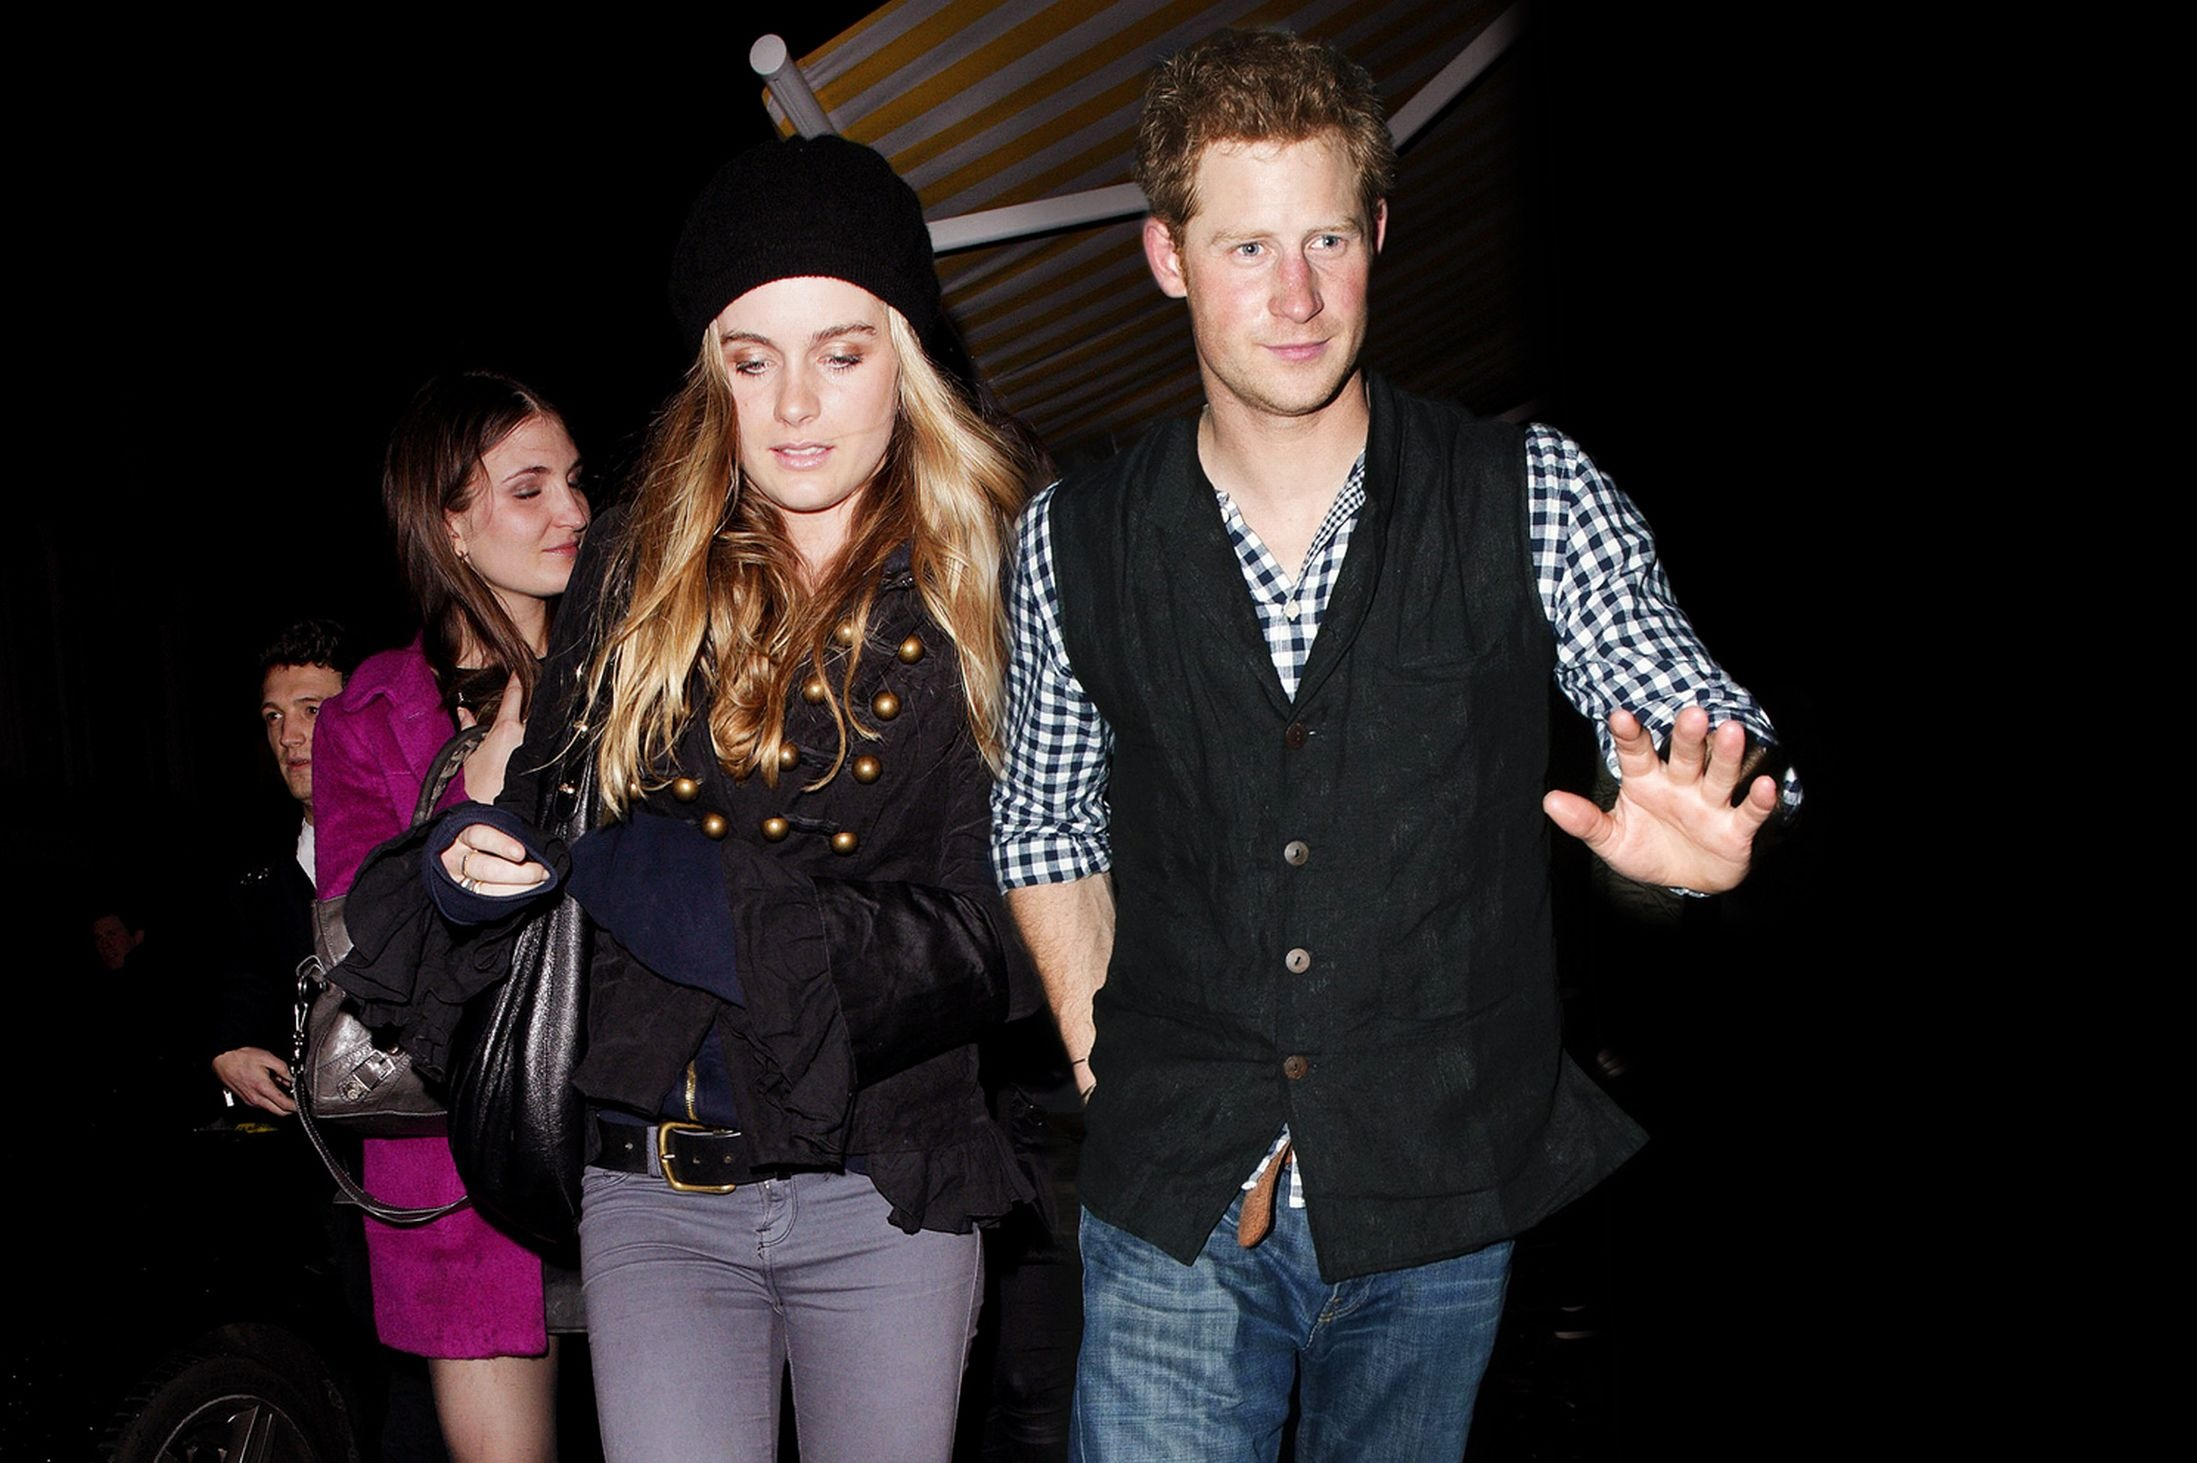 Cressida Bonas and Prince Harry are wearing black outfits. They dated for two years.